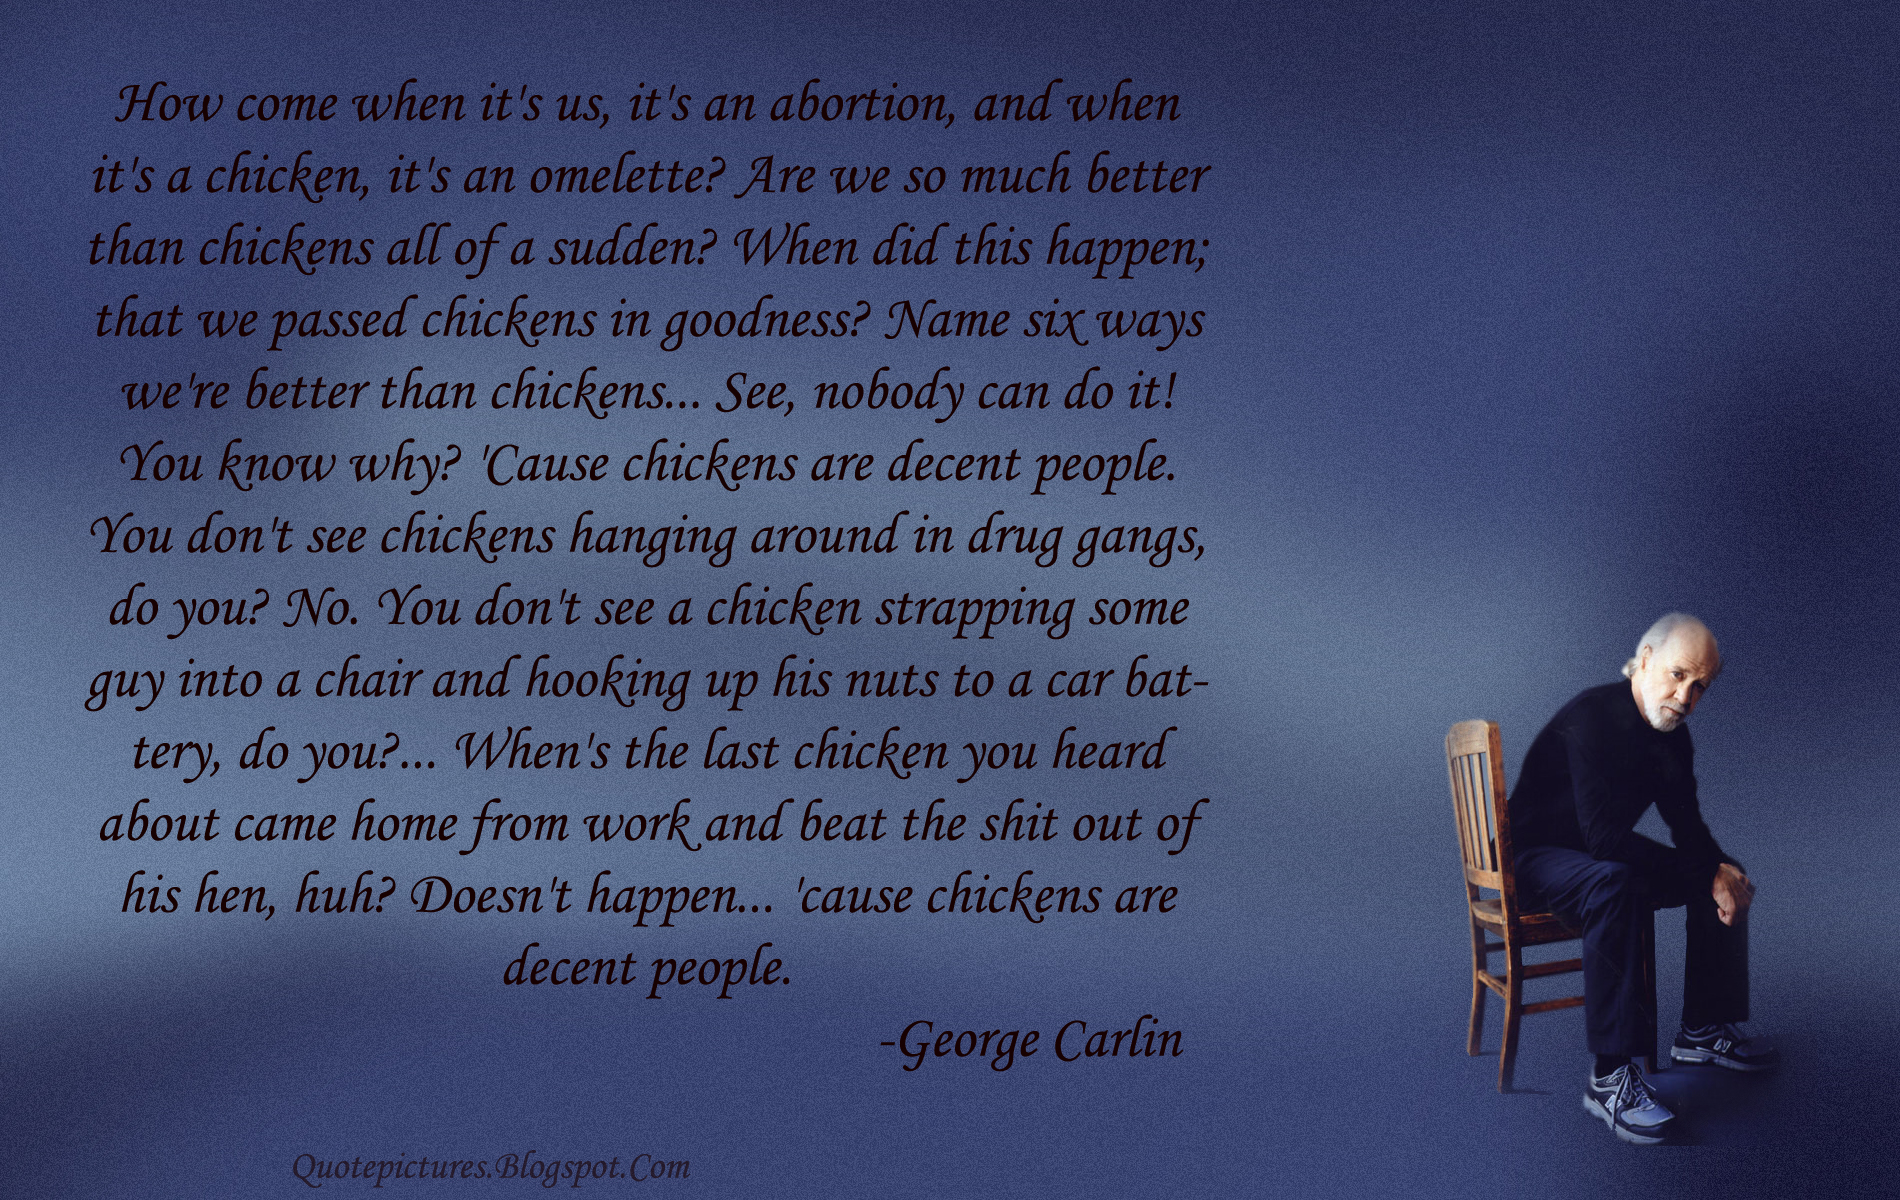 Quotes george carlin HD Wallpaper